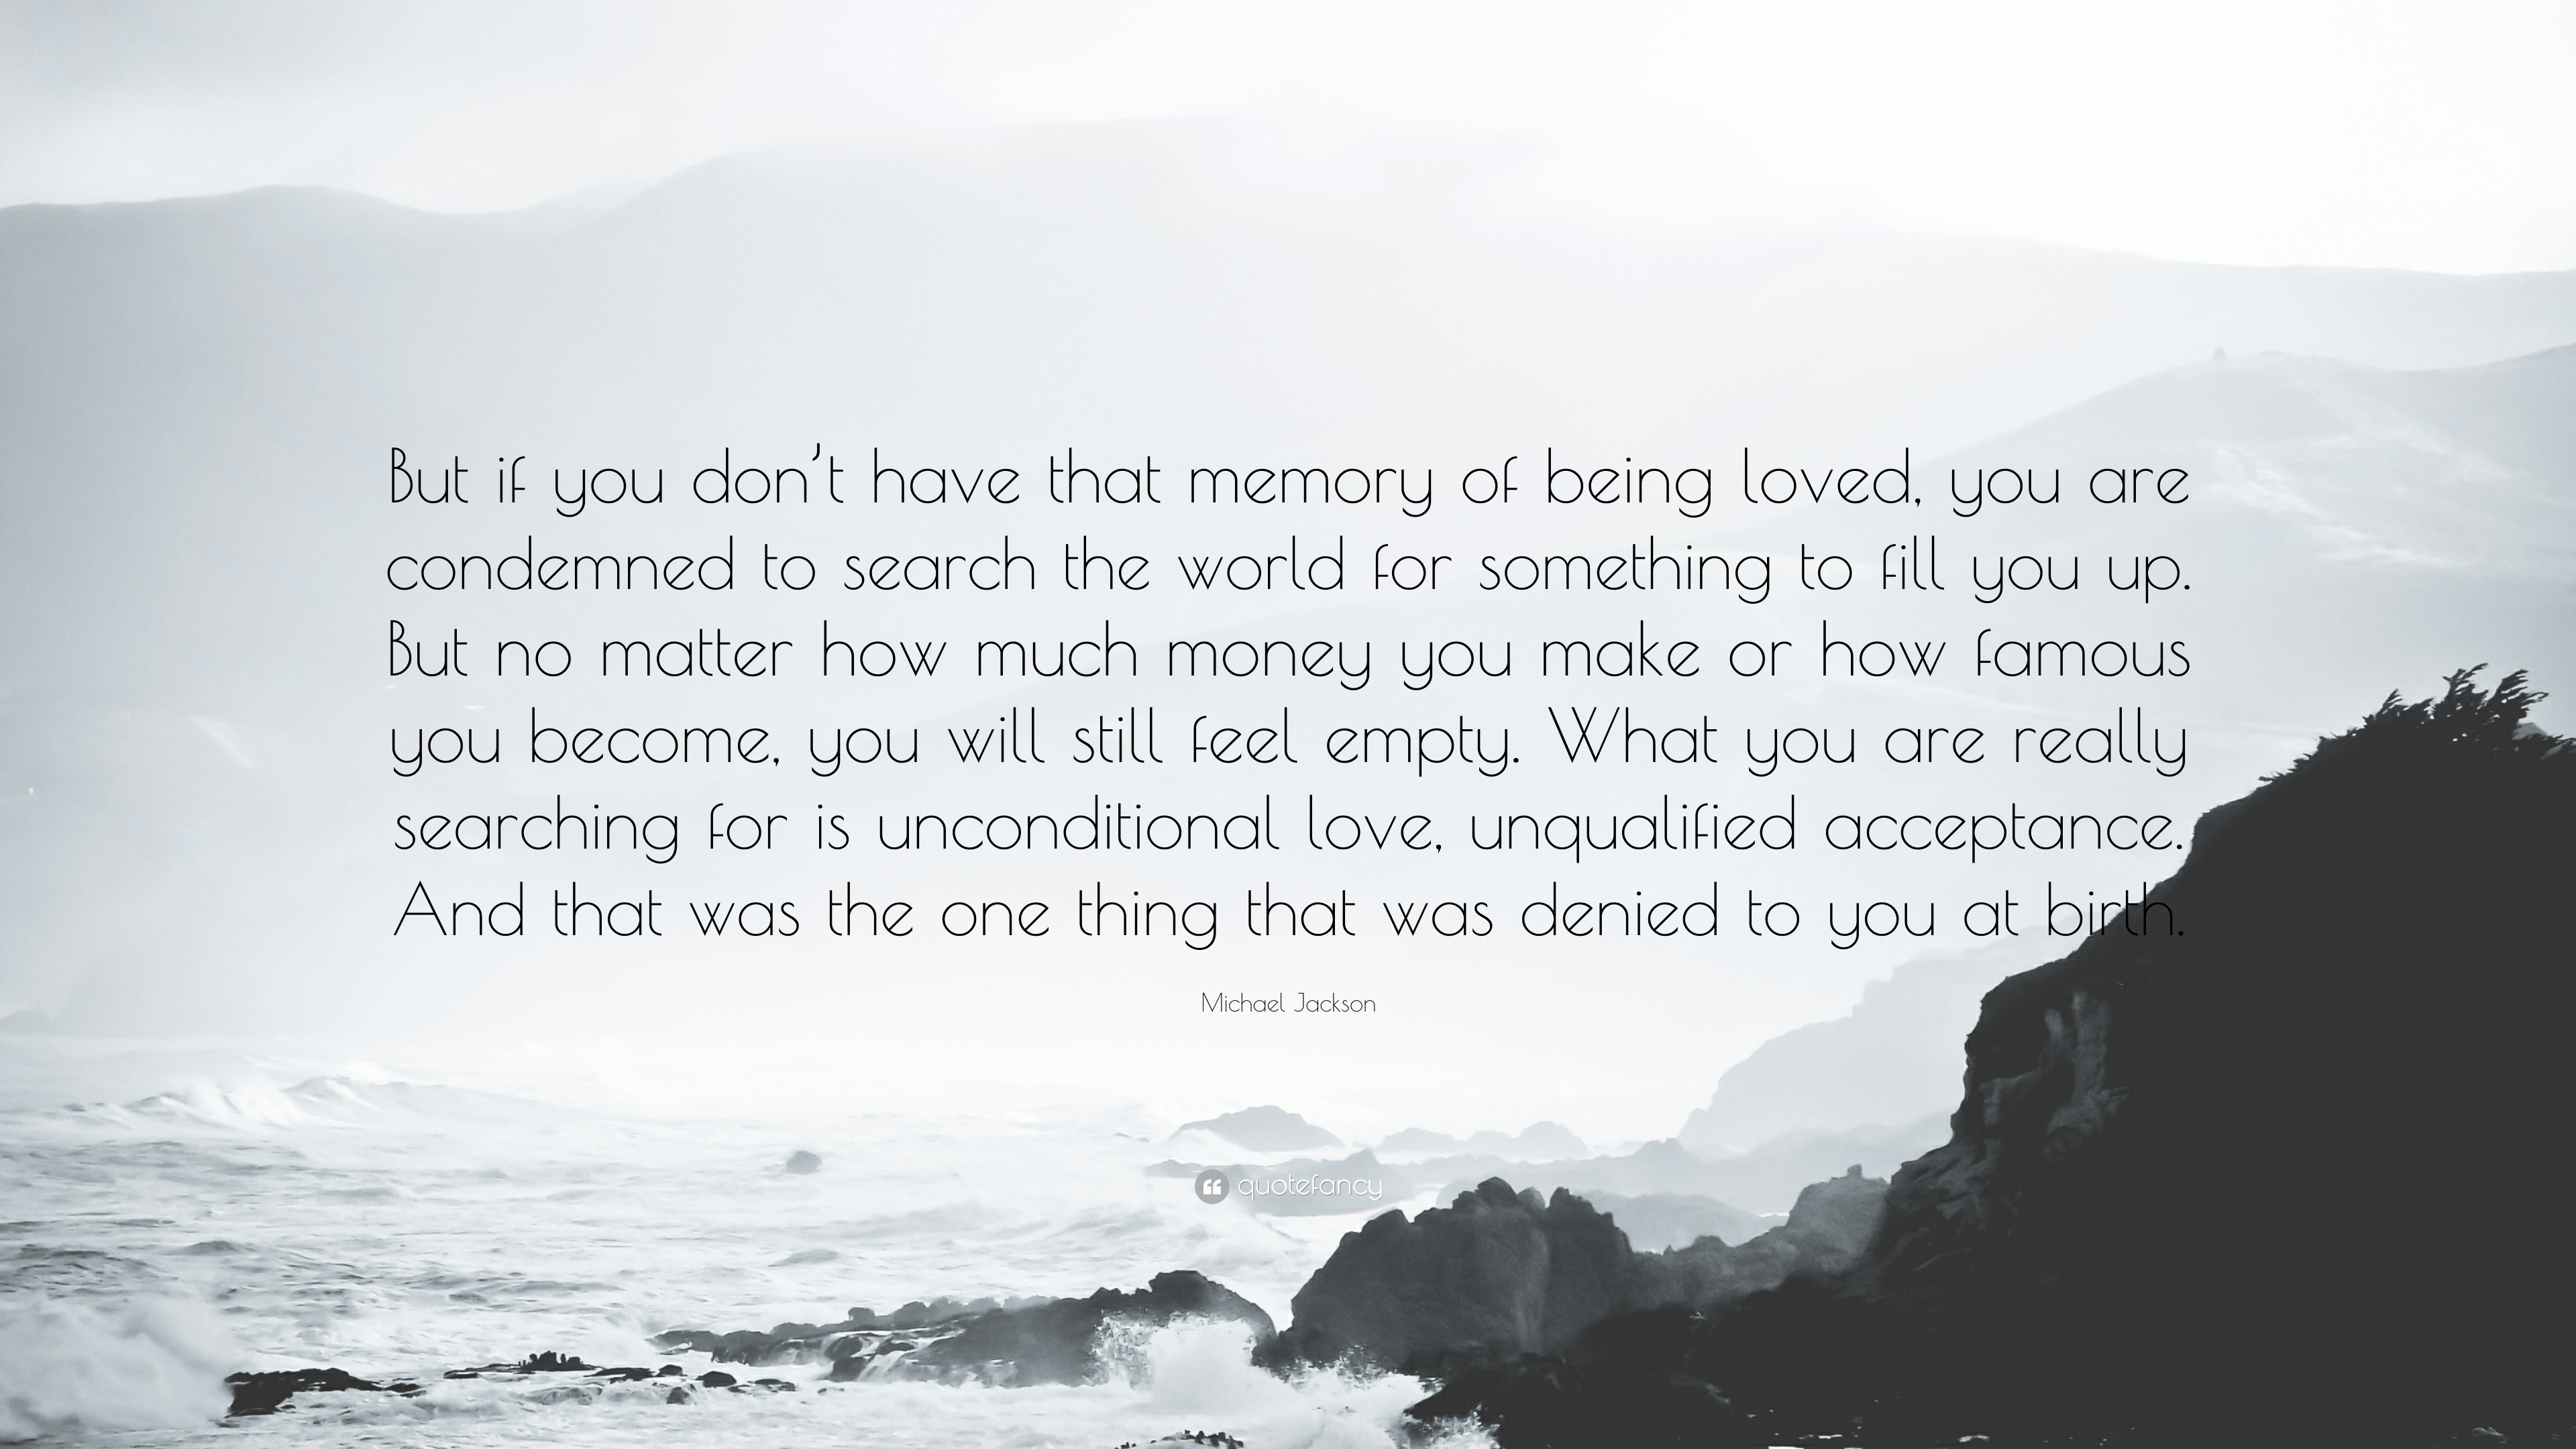 Memories Of A Loved One Quotes Quotes About Memories 40 Wallpapers  Quotefancy